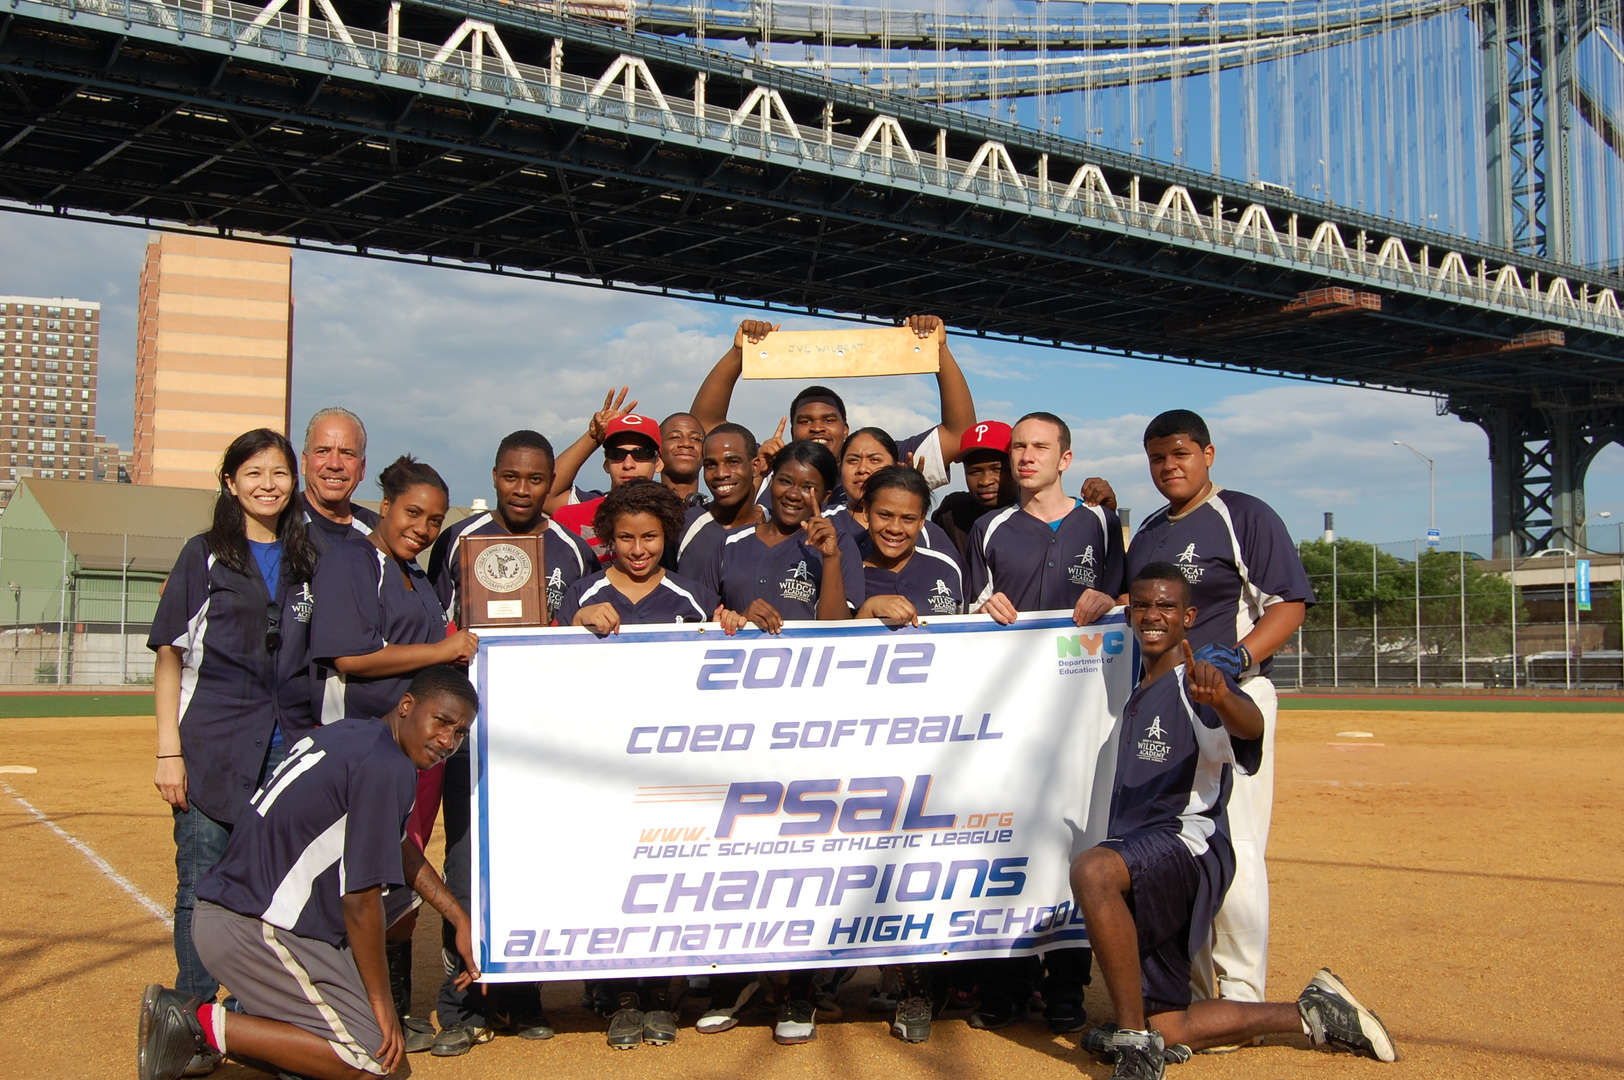 2011-2012 PSAL Coed Softball Champions  (1st undefeated season)